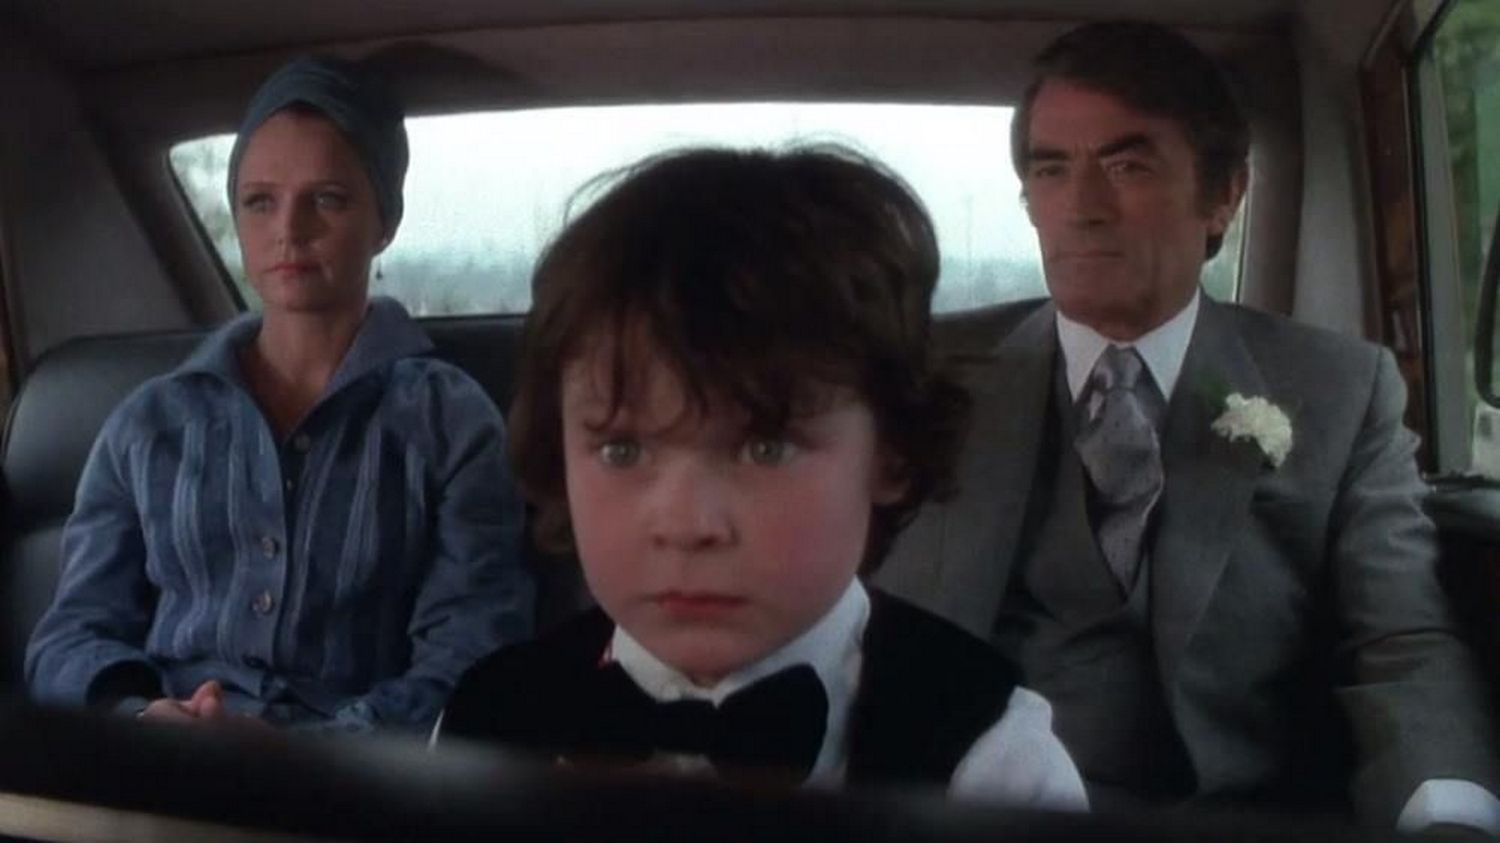 the omen remick stephens peck